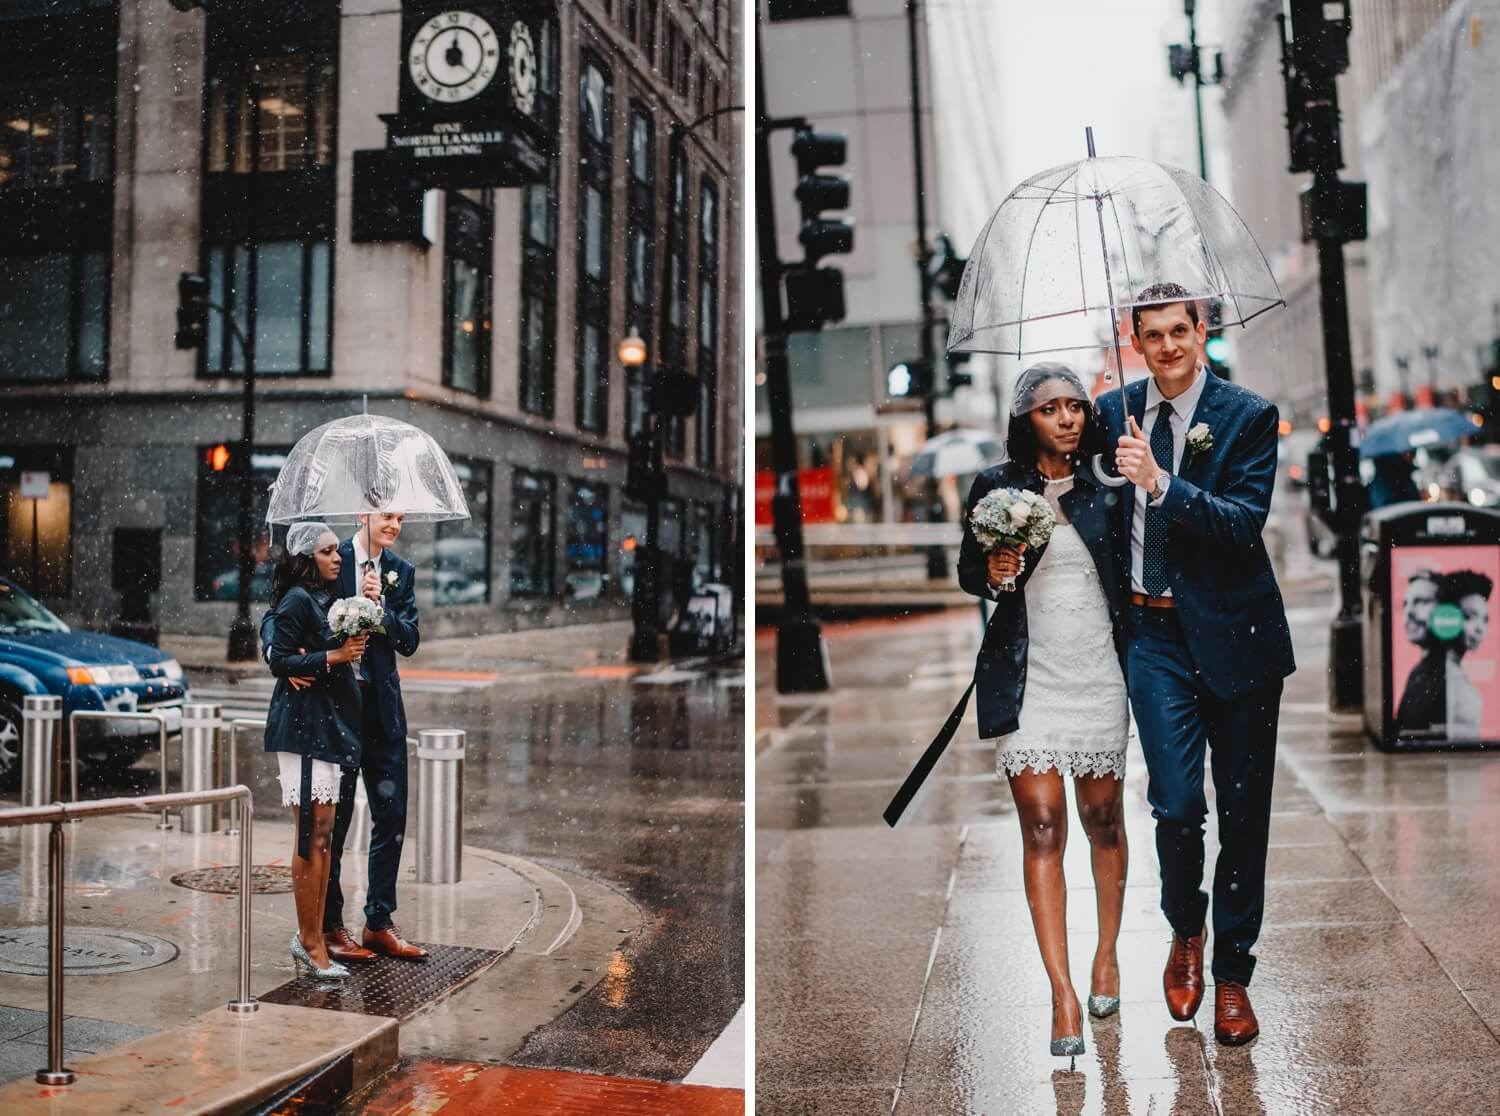 Chicago City Hall Wedding Photographer - The Adamkovi, bride and groom under a clear cute umbrella, mixed couple